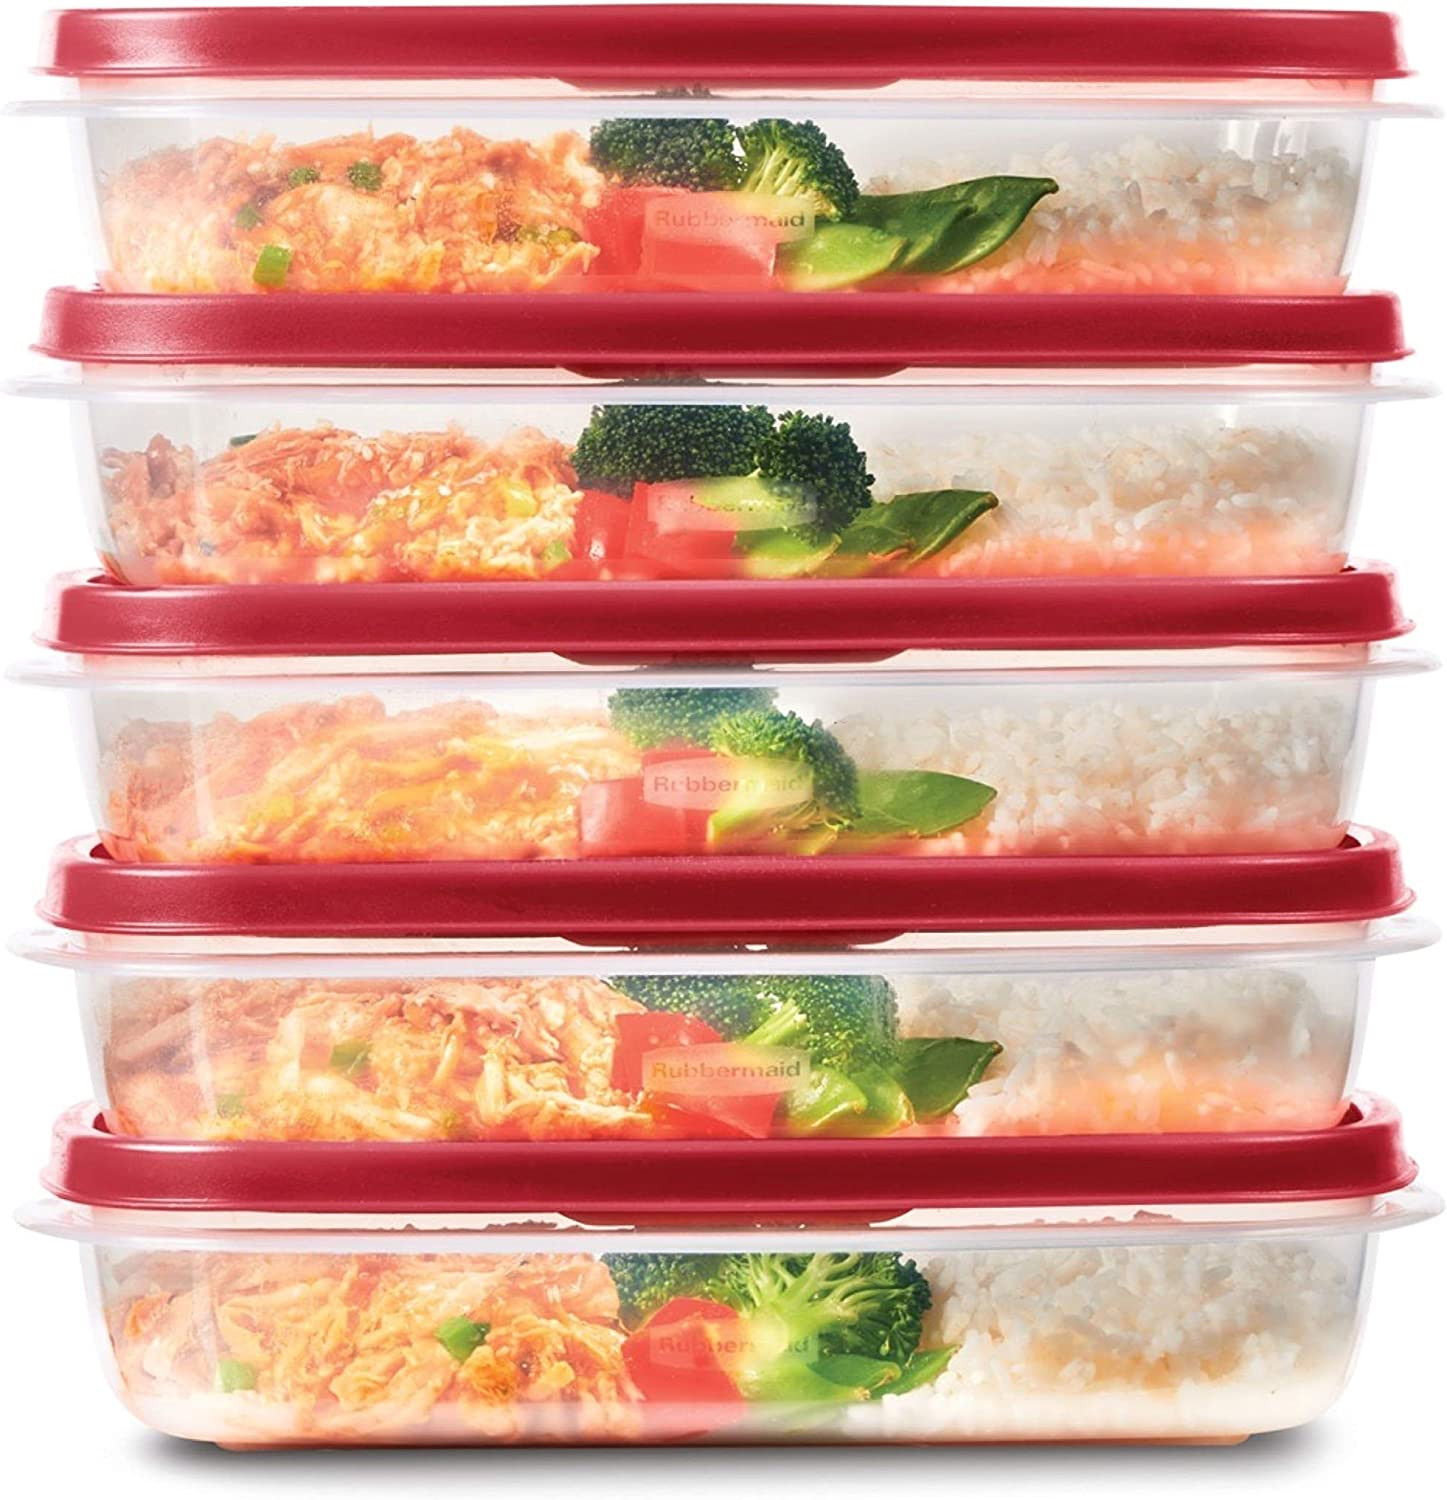 Rubbermaid EasyFindLids Meal Prep Containers, One Compartment, 5.5 Cup, 5-Pack